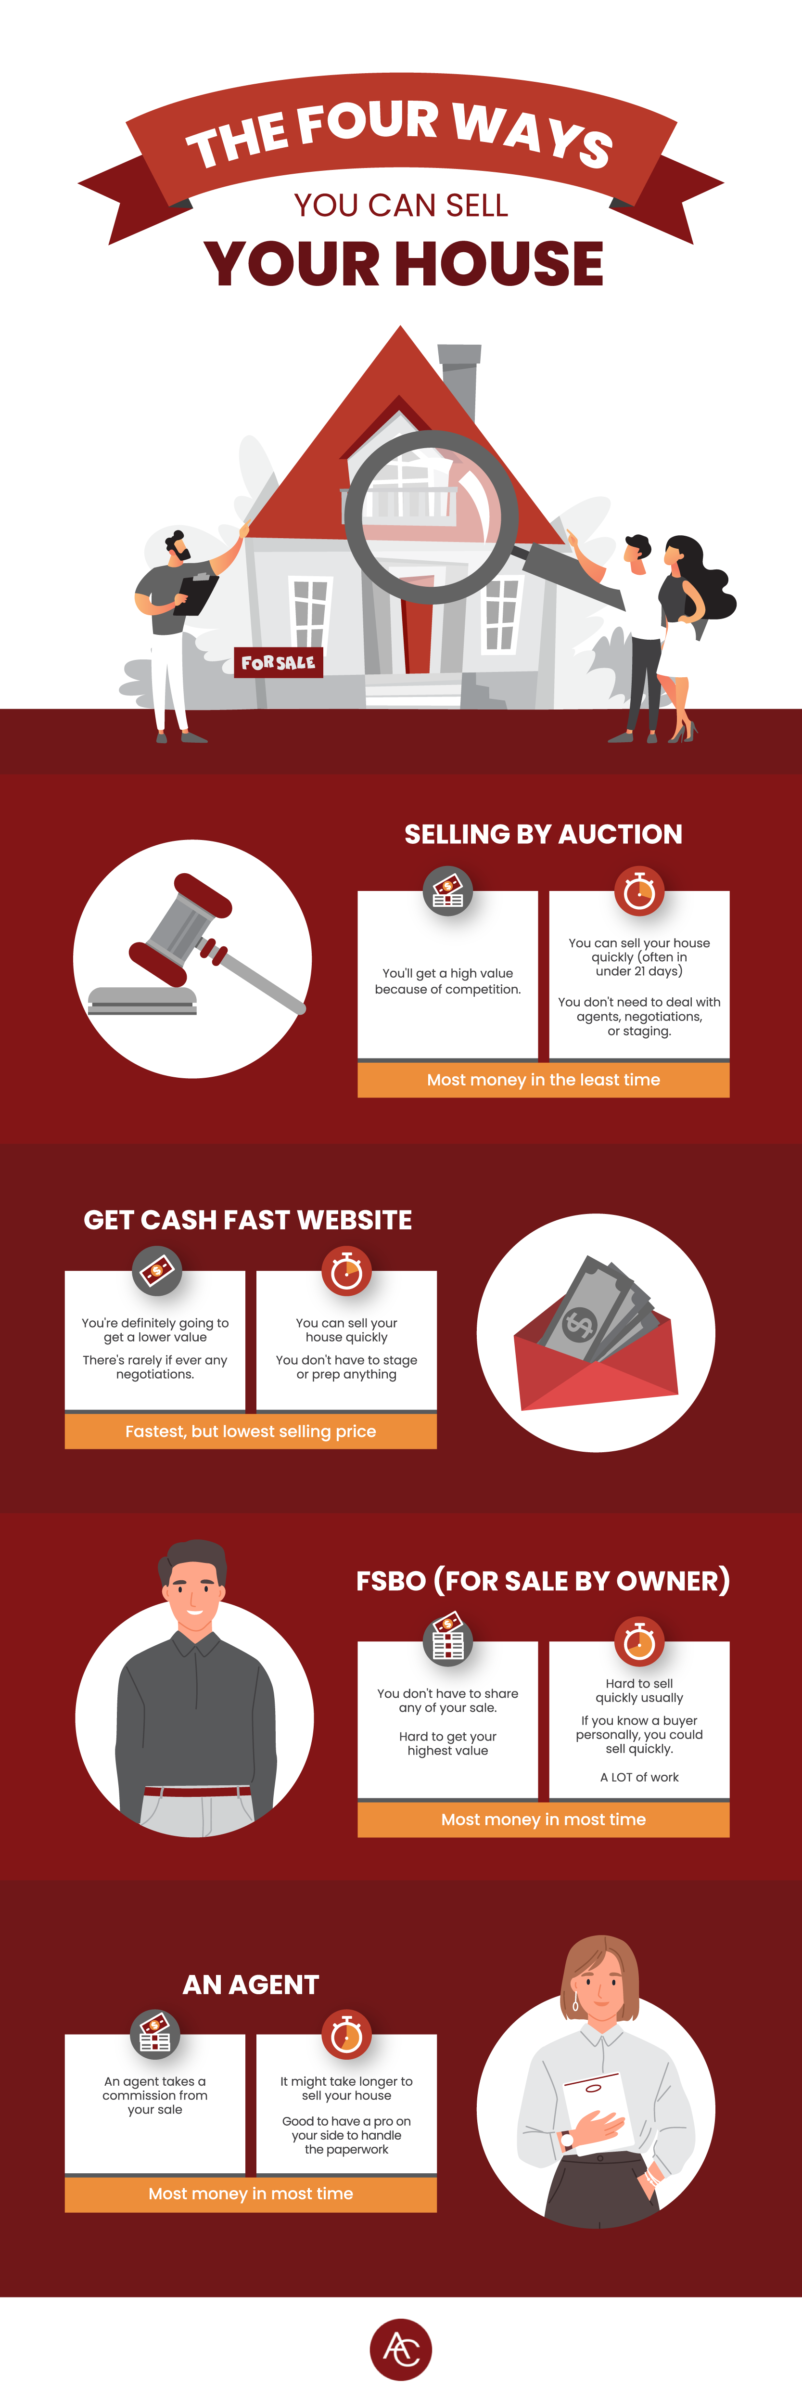 Infographic on the four ways you can sell your house from Alex Cooper